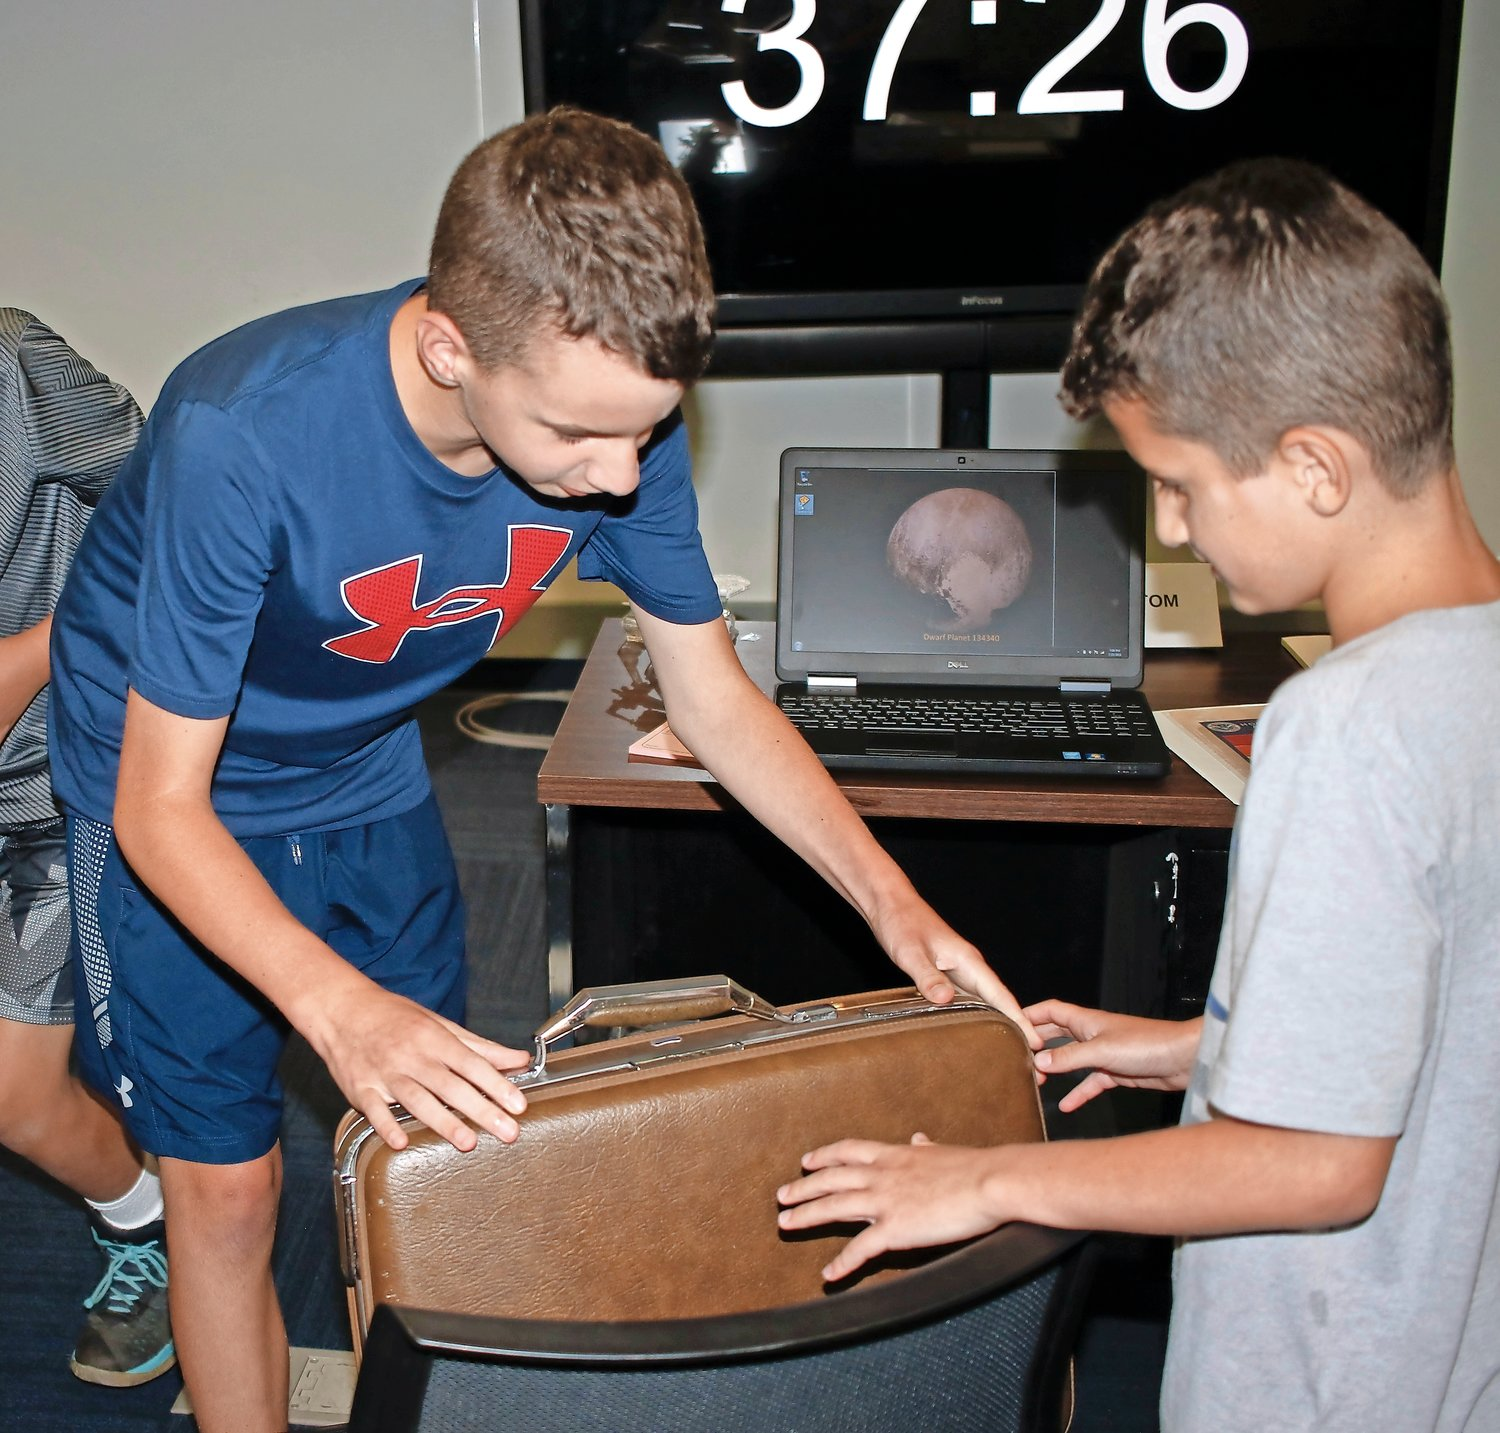 The briefcase found by Joseph, 12, and Justin Romano, 9, needed a numerical code to be opened. Inside was a clue on where to find a key. The team needed four keys to launch the missile and destroy the meteor.